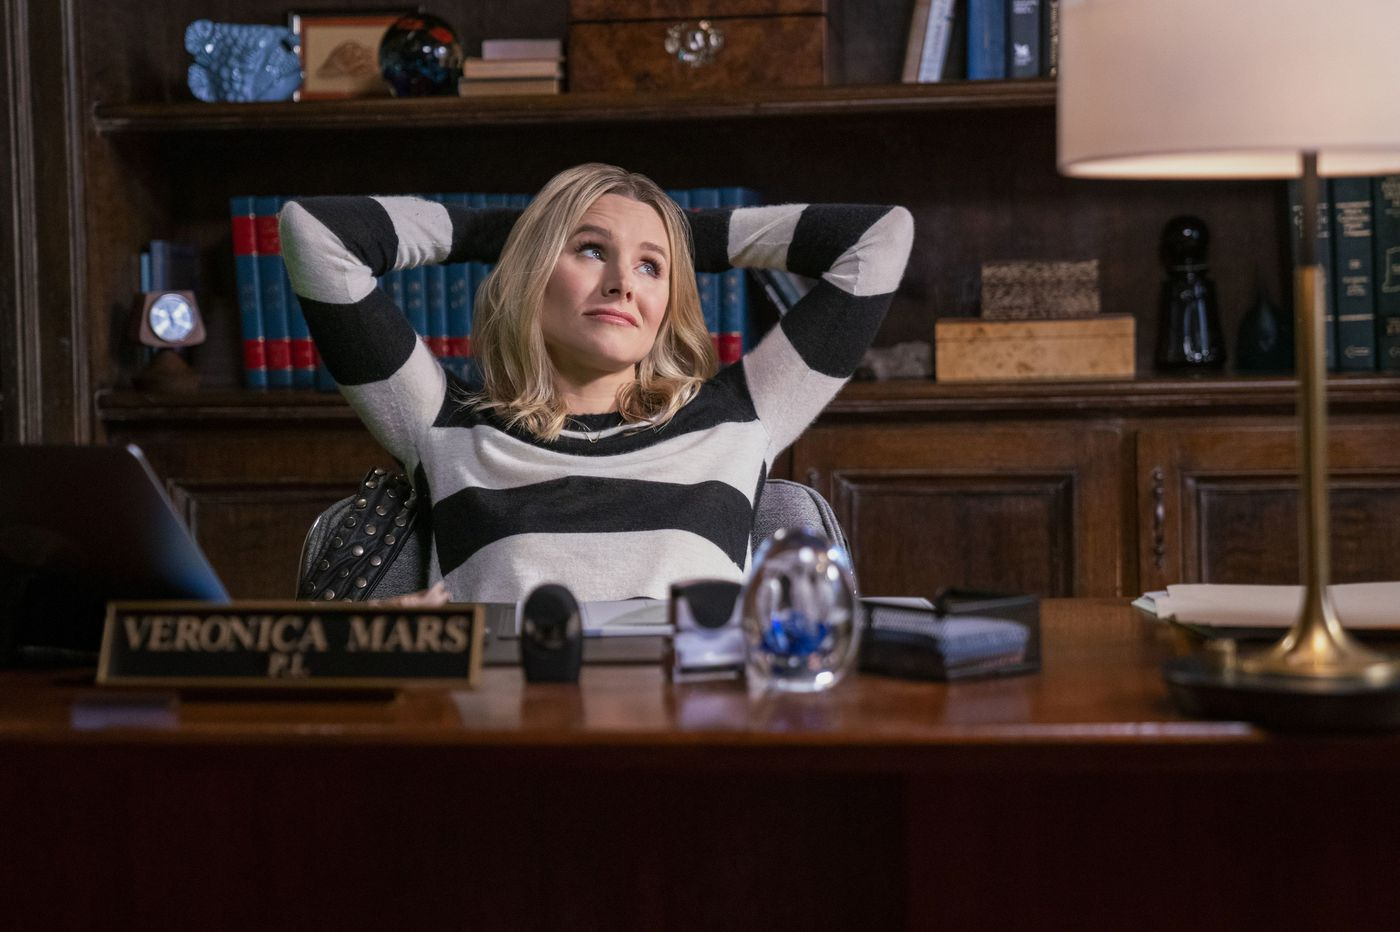 'Veronica Mars': Let Hulu's revival send you back to beginning